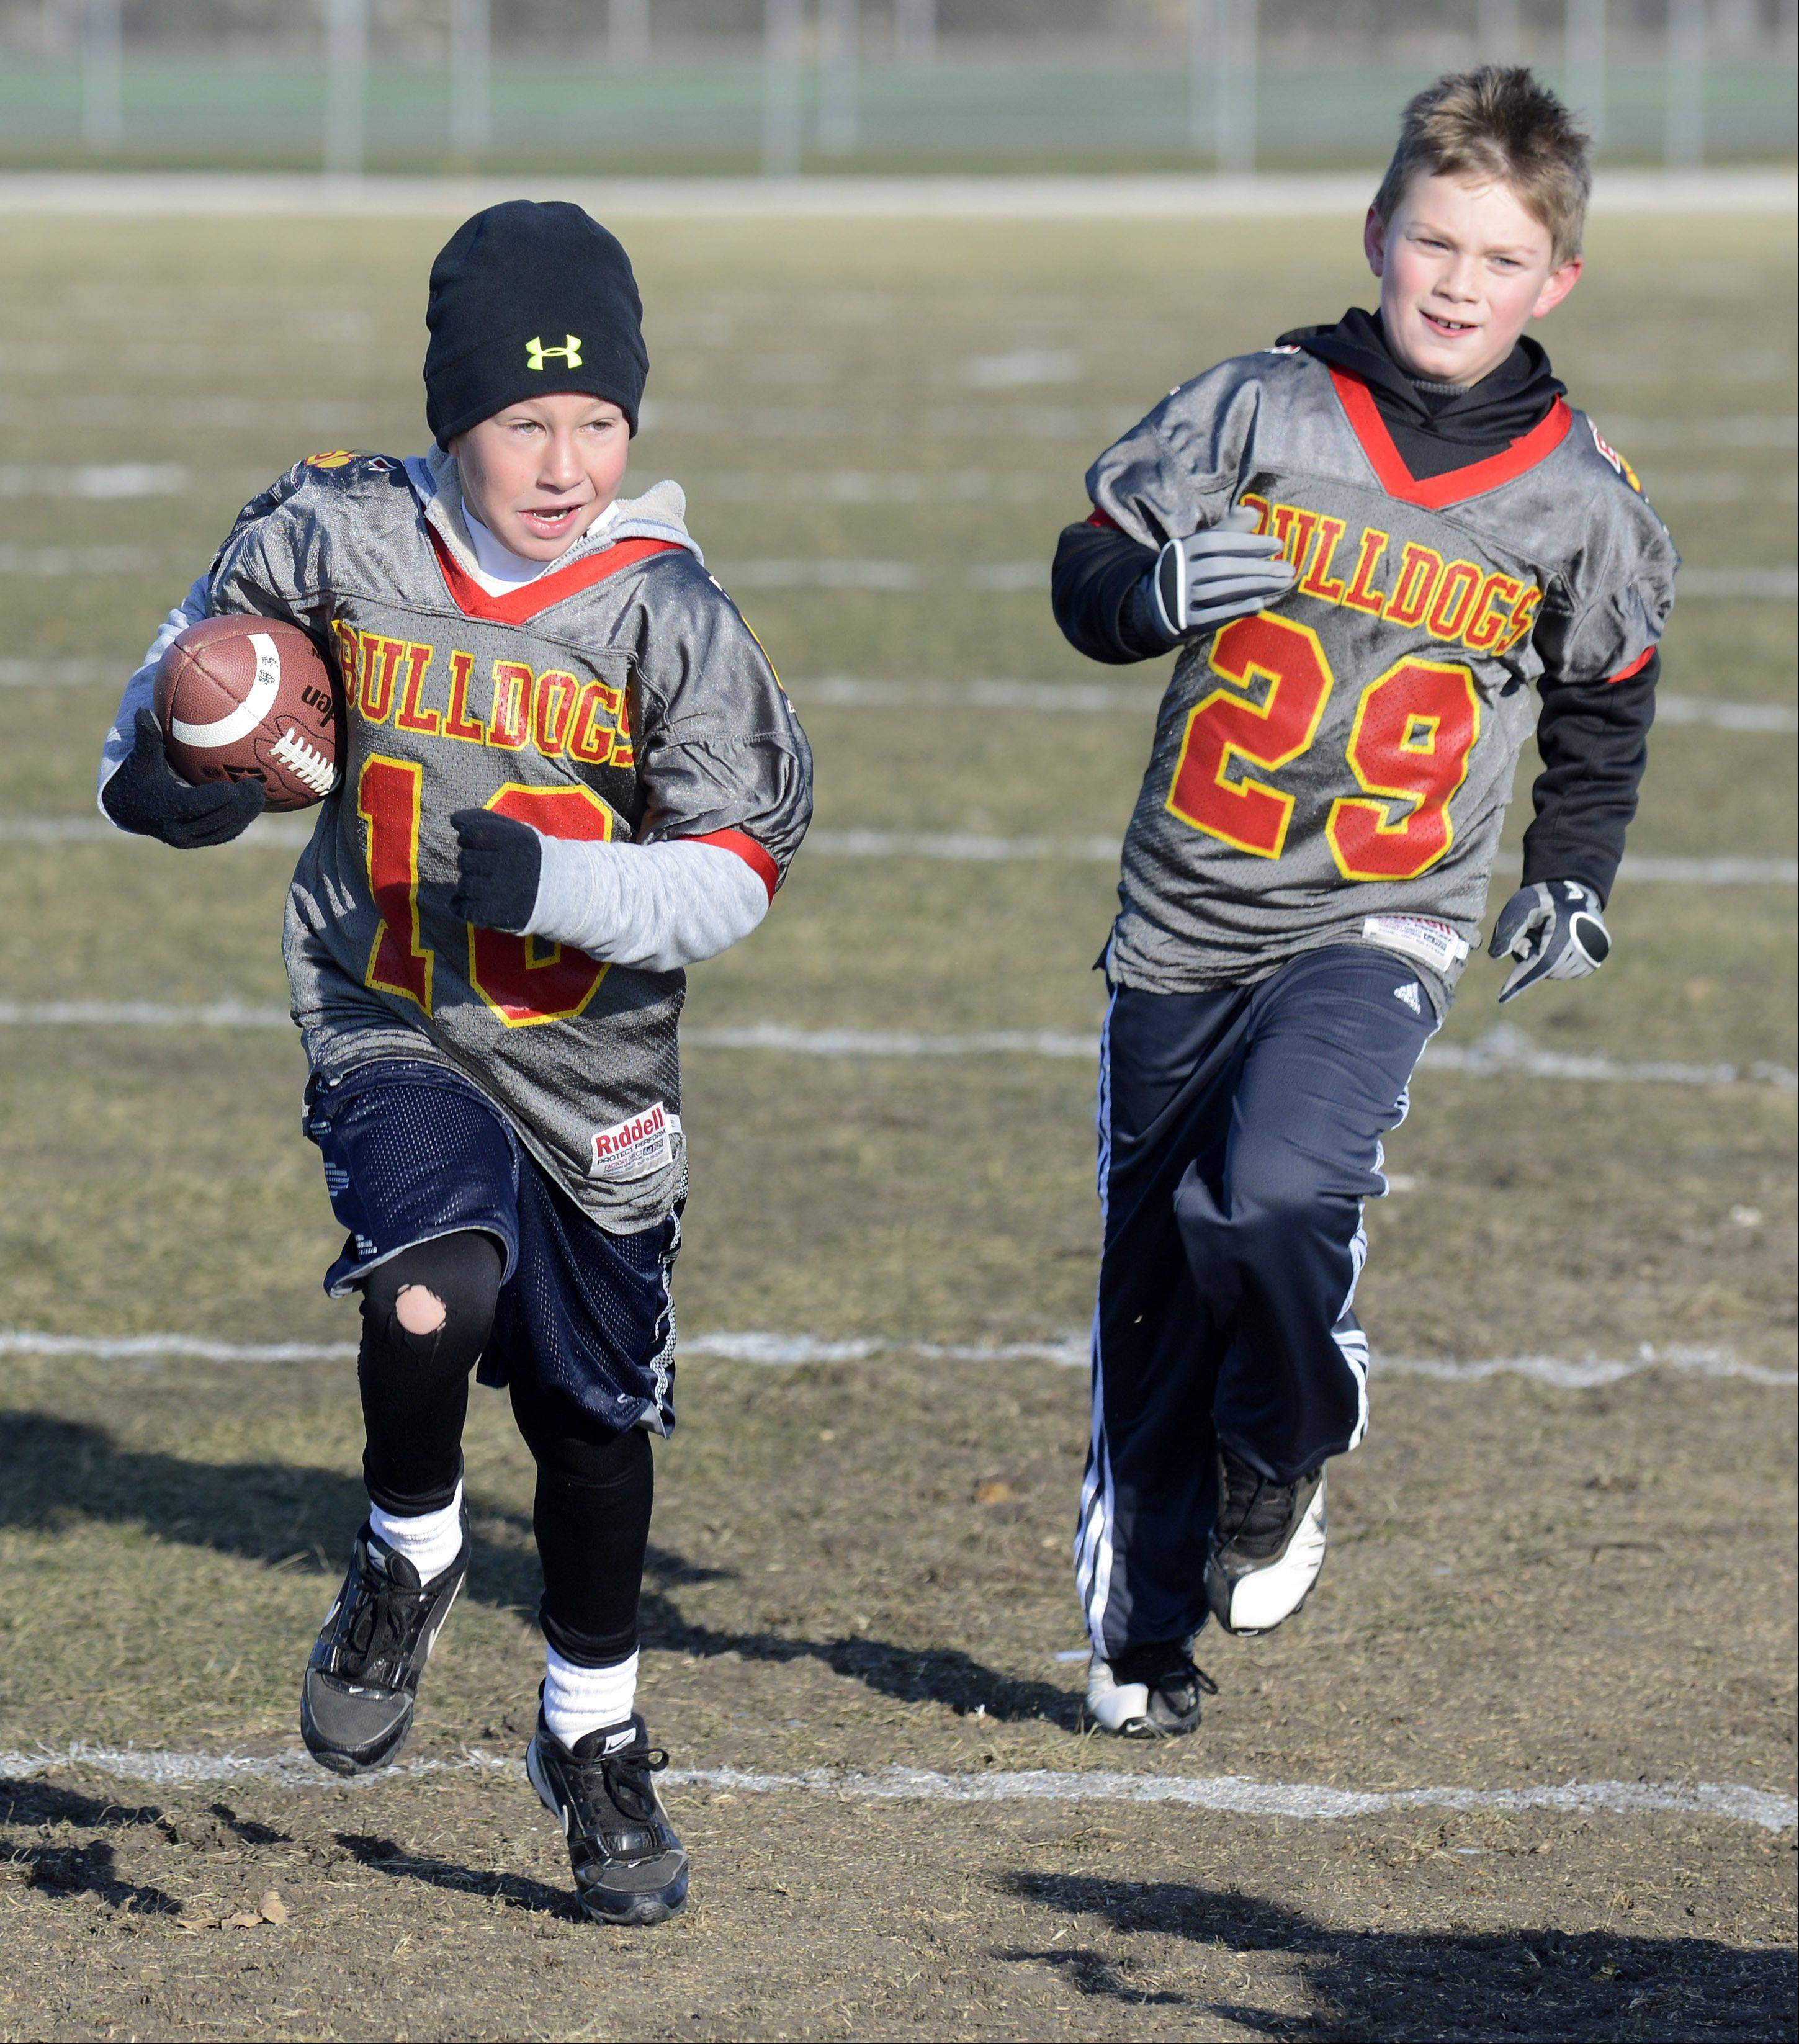 Danny Moninger, 10, evades Dylan Funkhouser, 9, both of Batavia, as they warm up before the Batavia Youth Football league's annual Thanksgiving Day Turkey Bowl game. Prior to their game, they cheered on the Batavia High School football team as they took to the field for their last practice before the state championship on Saturday.